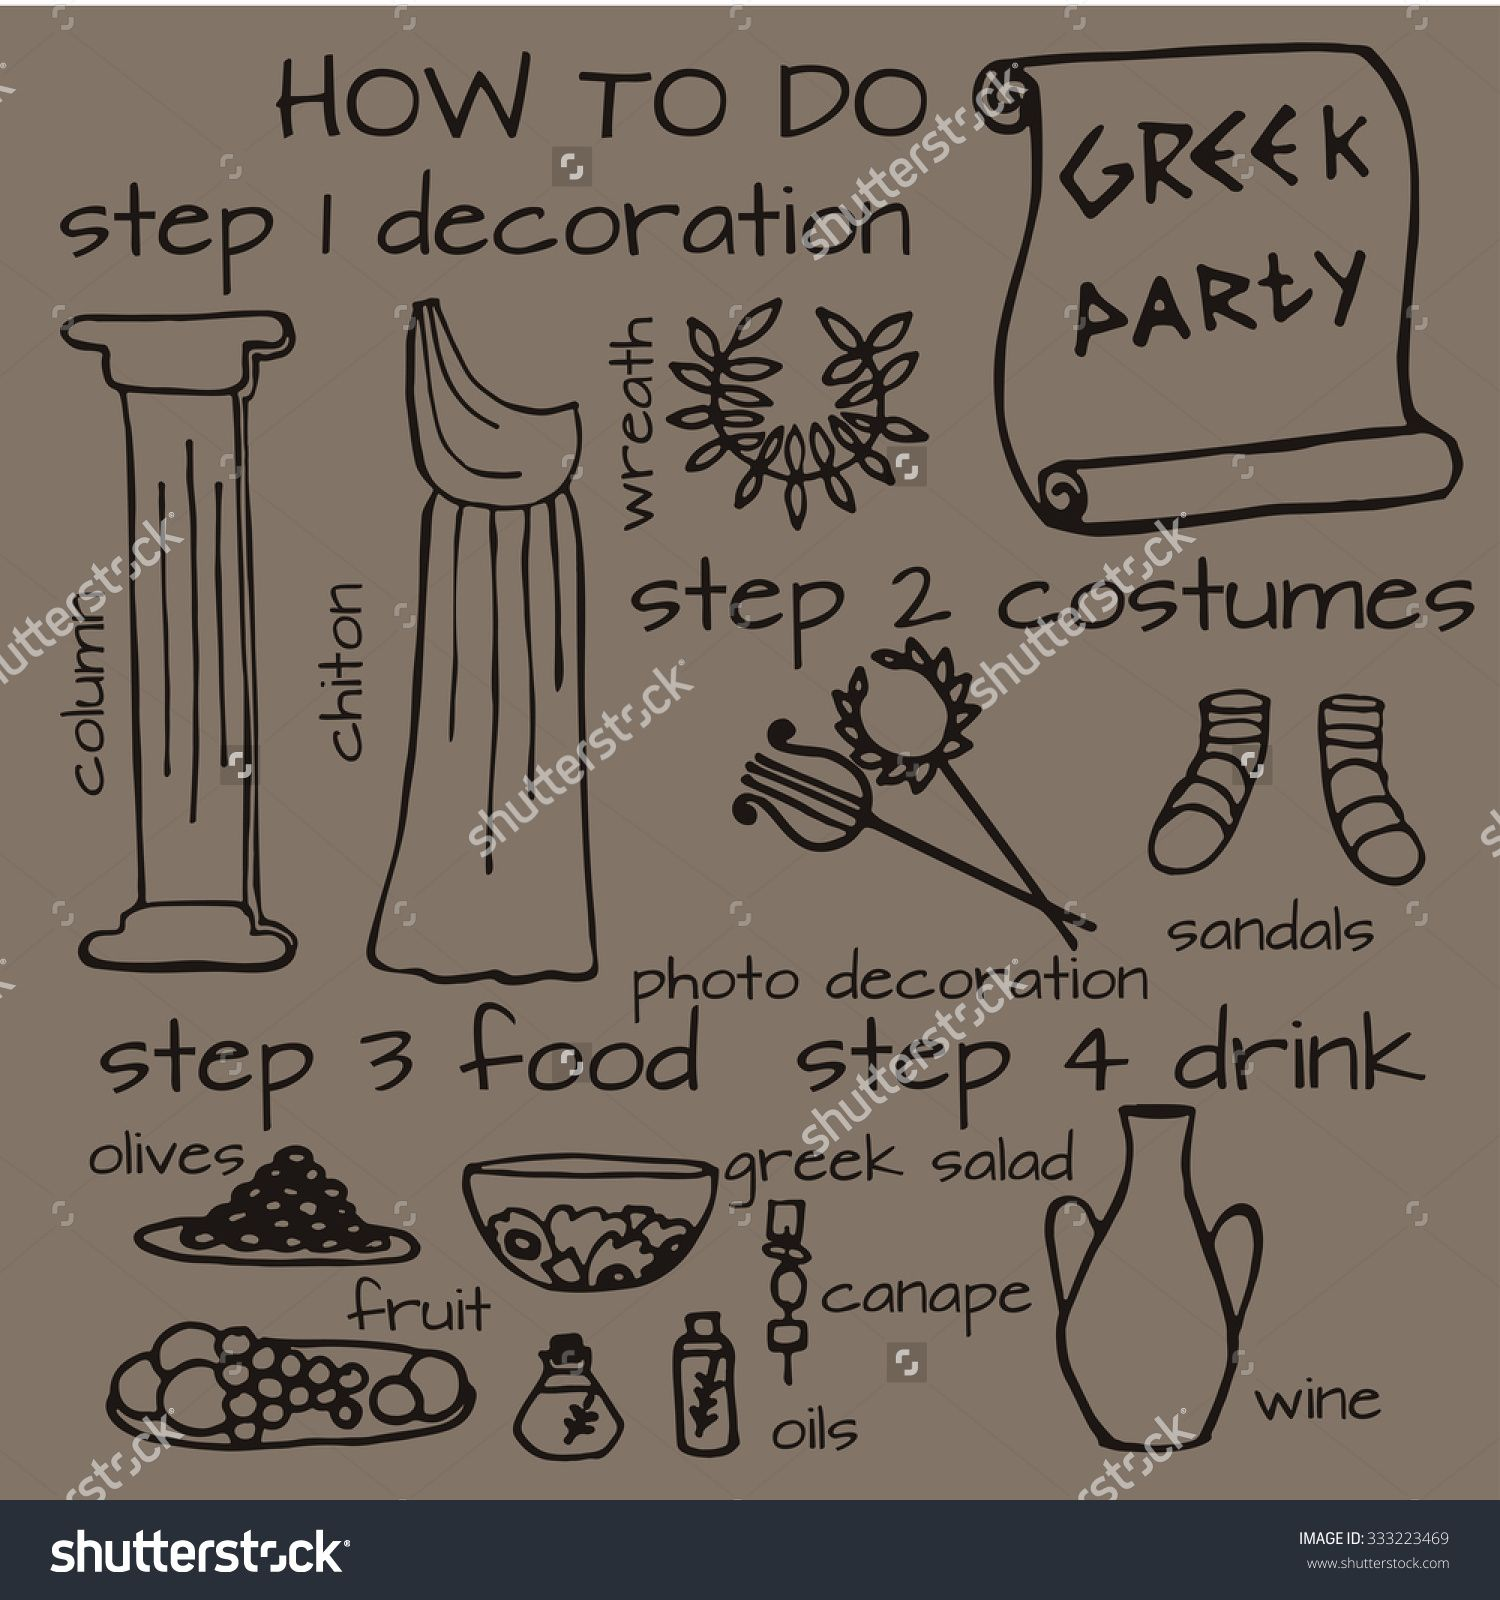 ancient greece party ideas Google Search … toga party